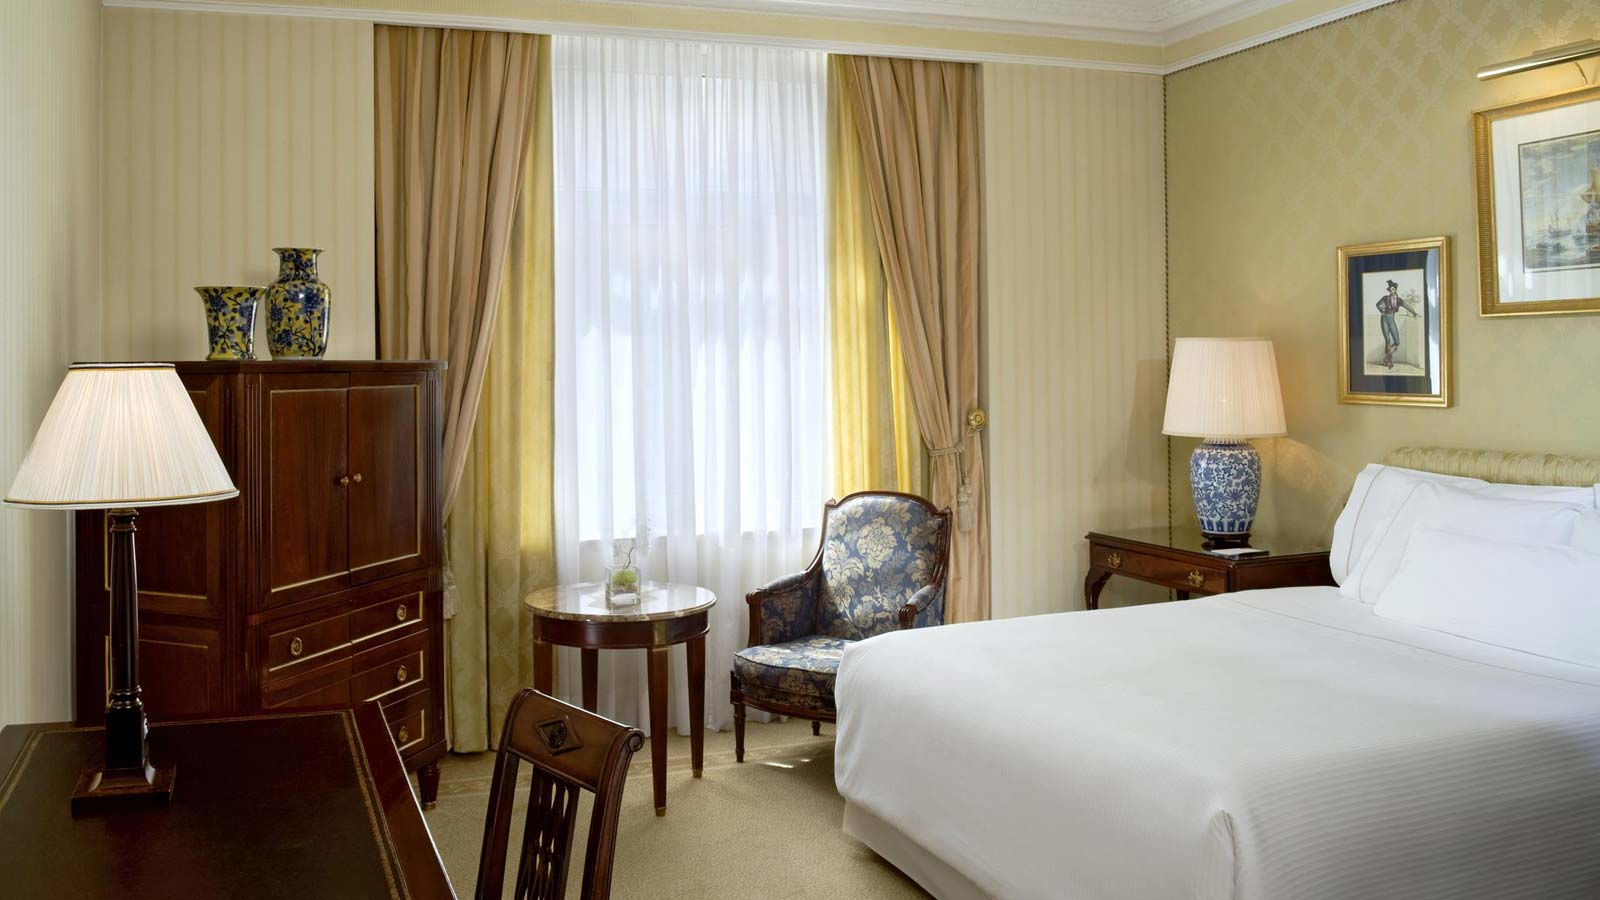 Hotel the westin palace madrid habitaciones y suites de for Descripcion habitacion hotel